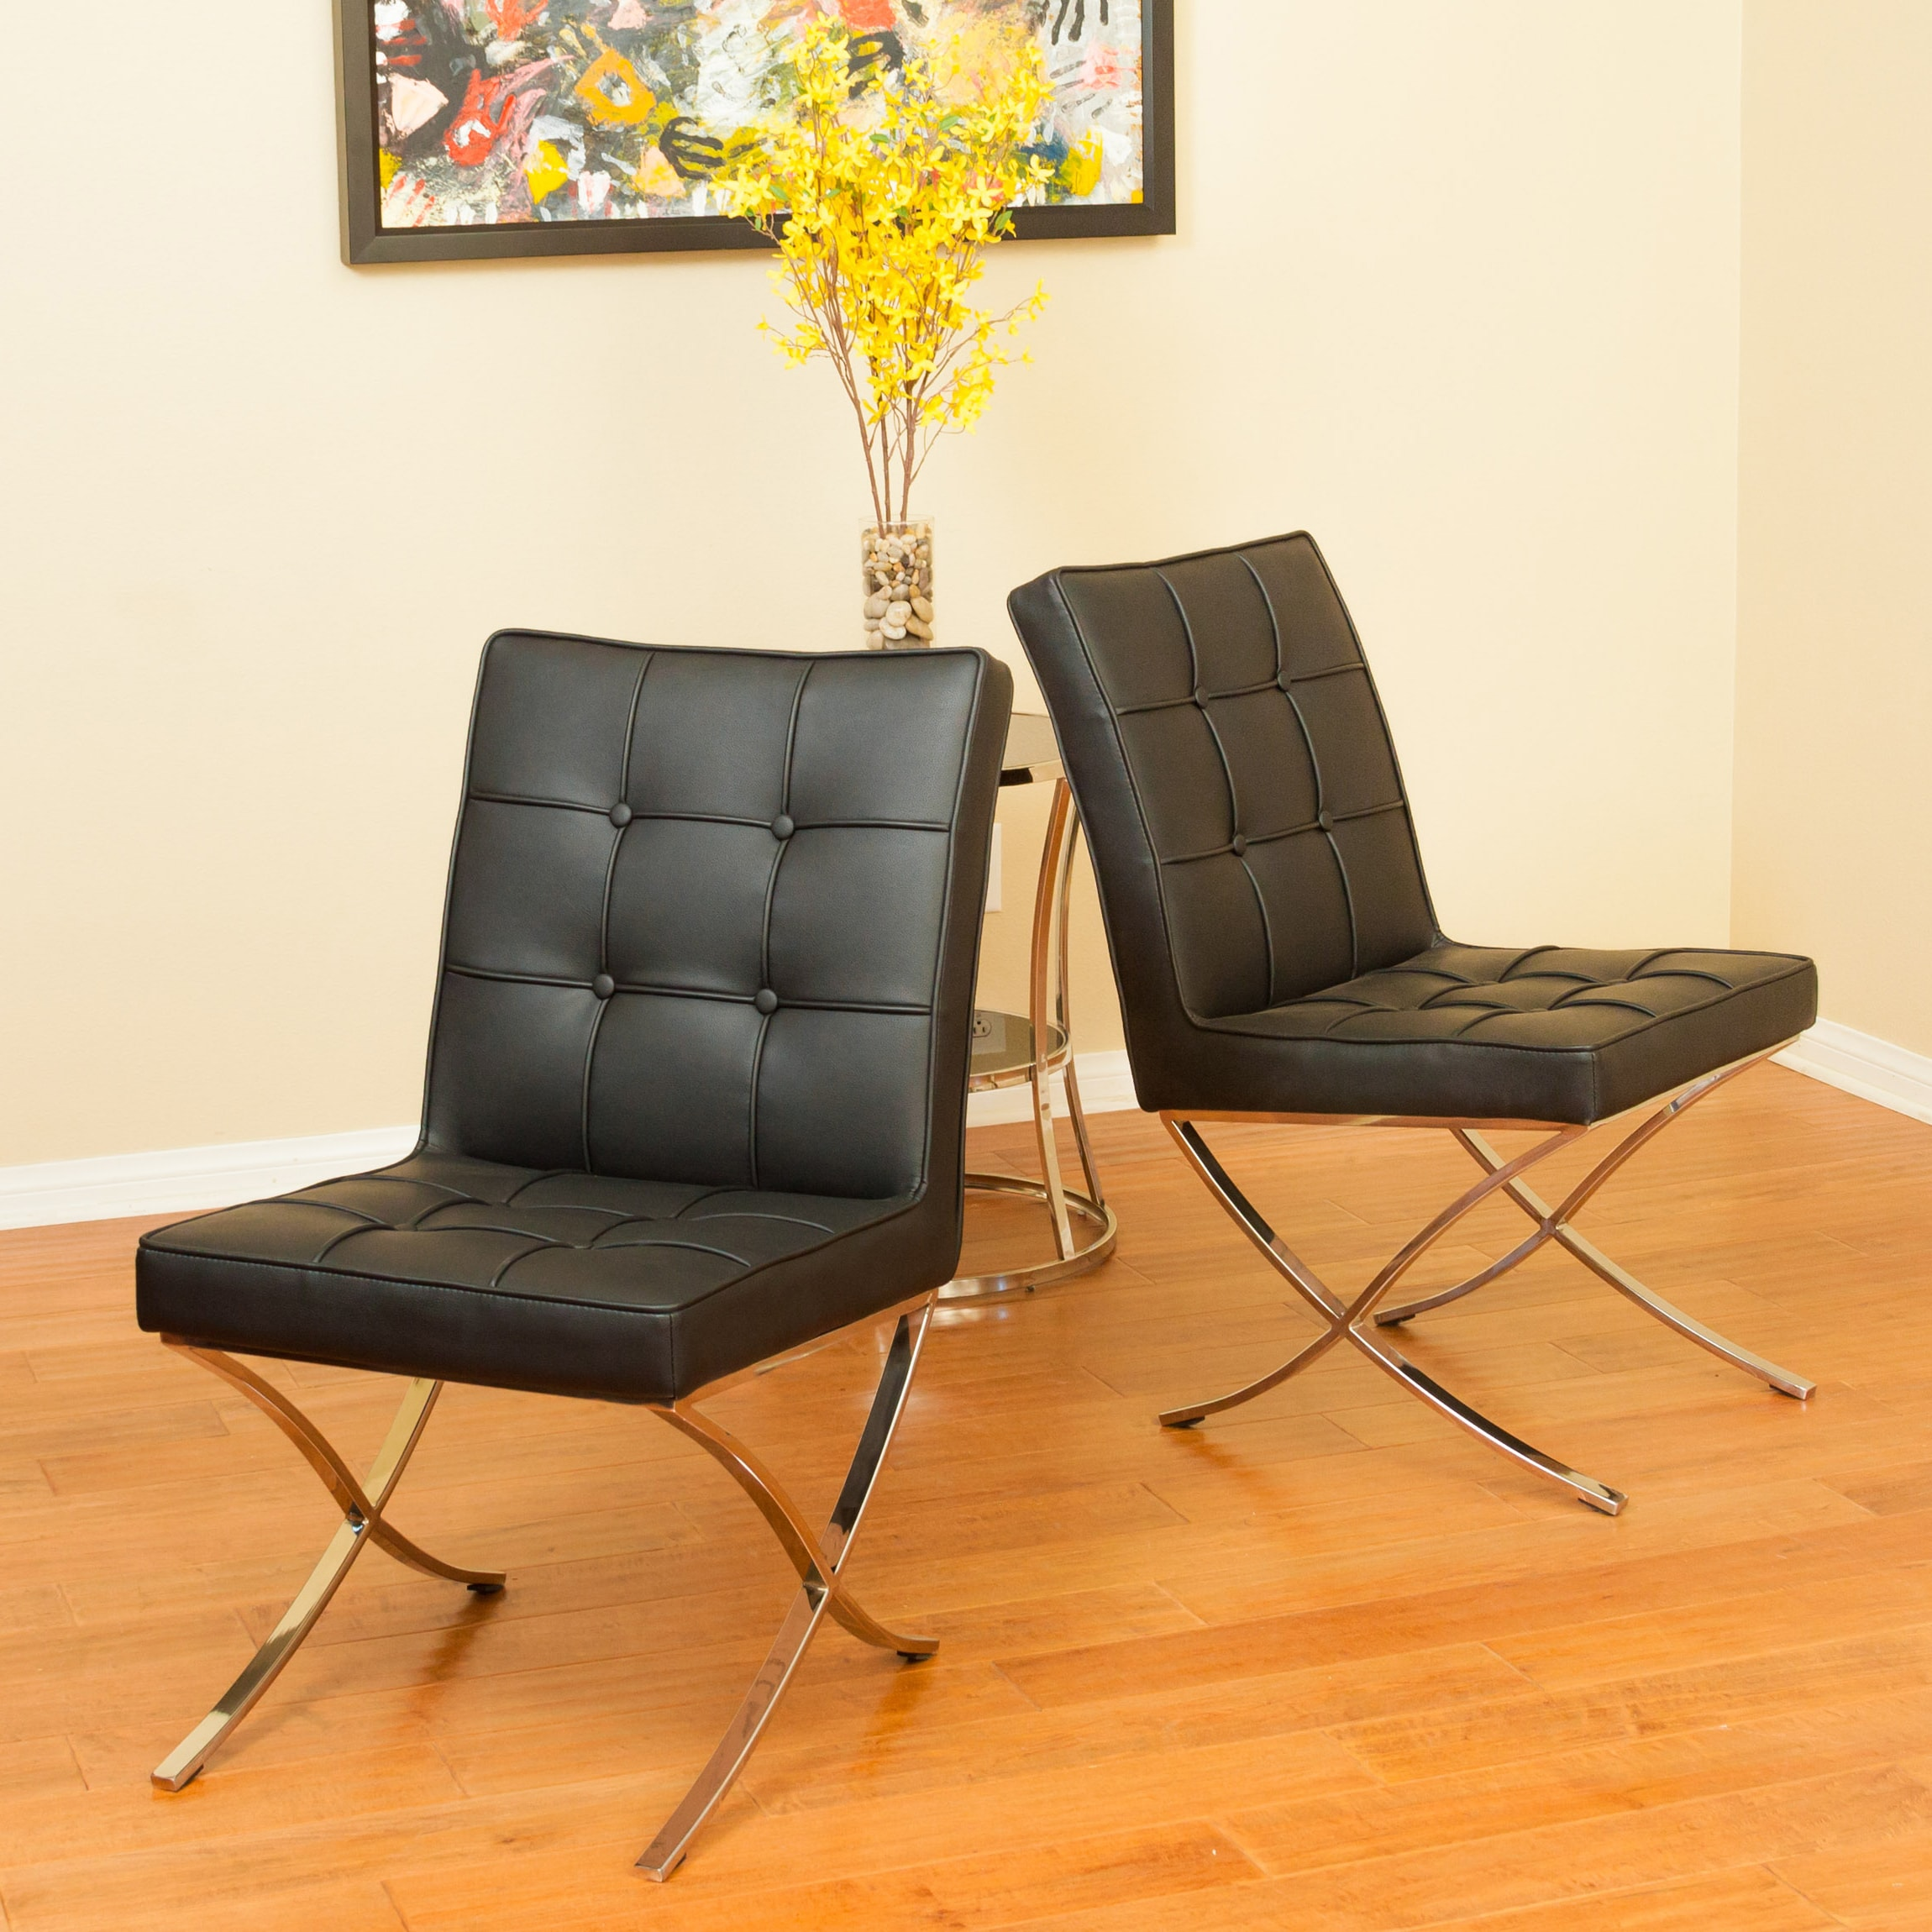 christopher knight leather chair tiger oak dining chairs home milania black